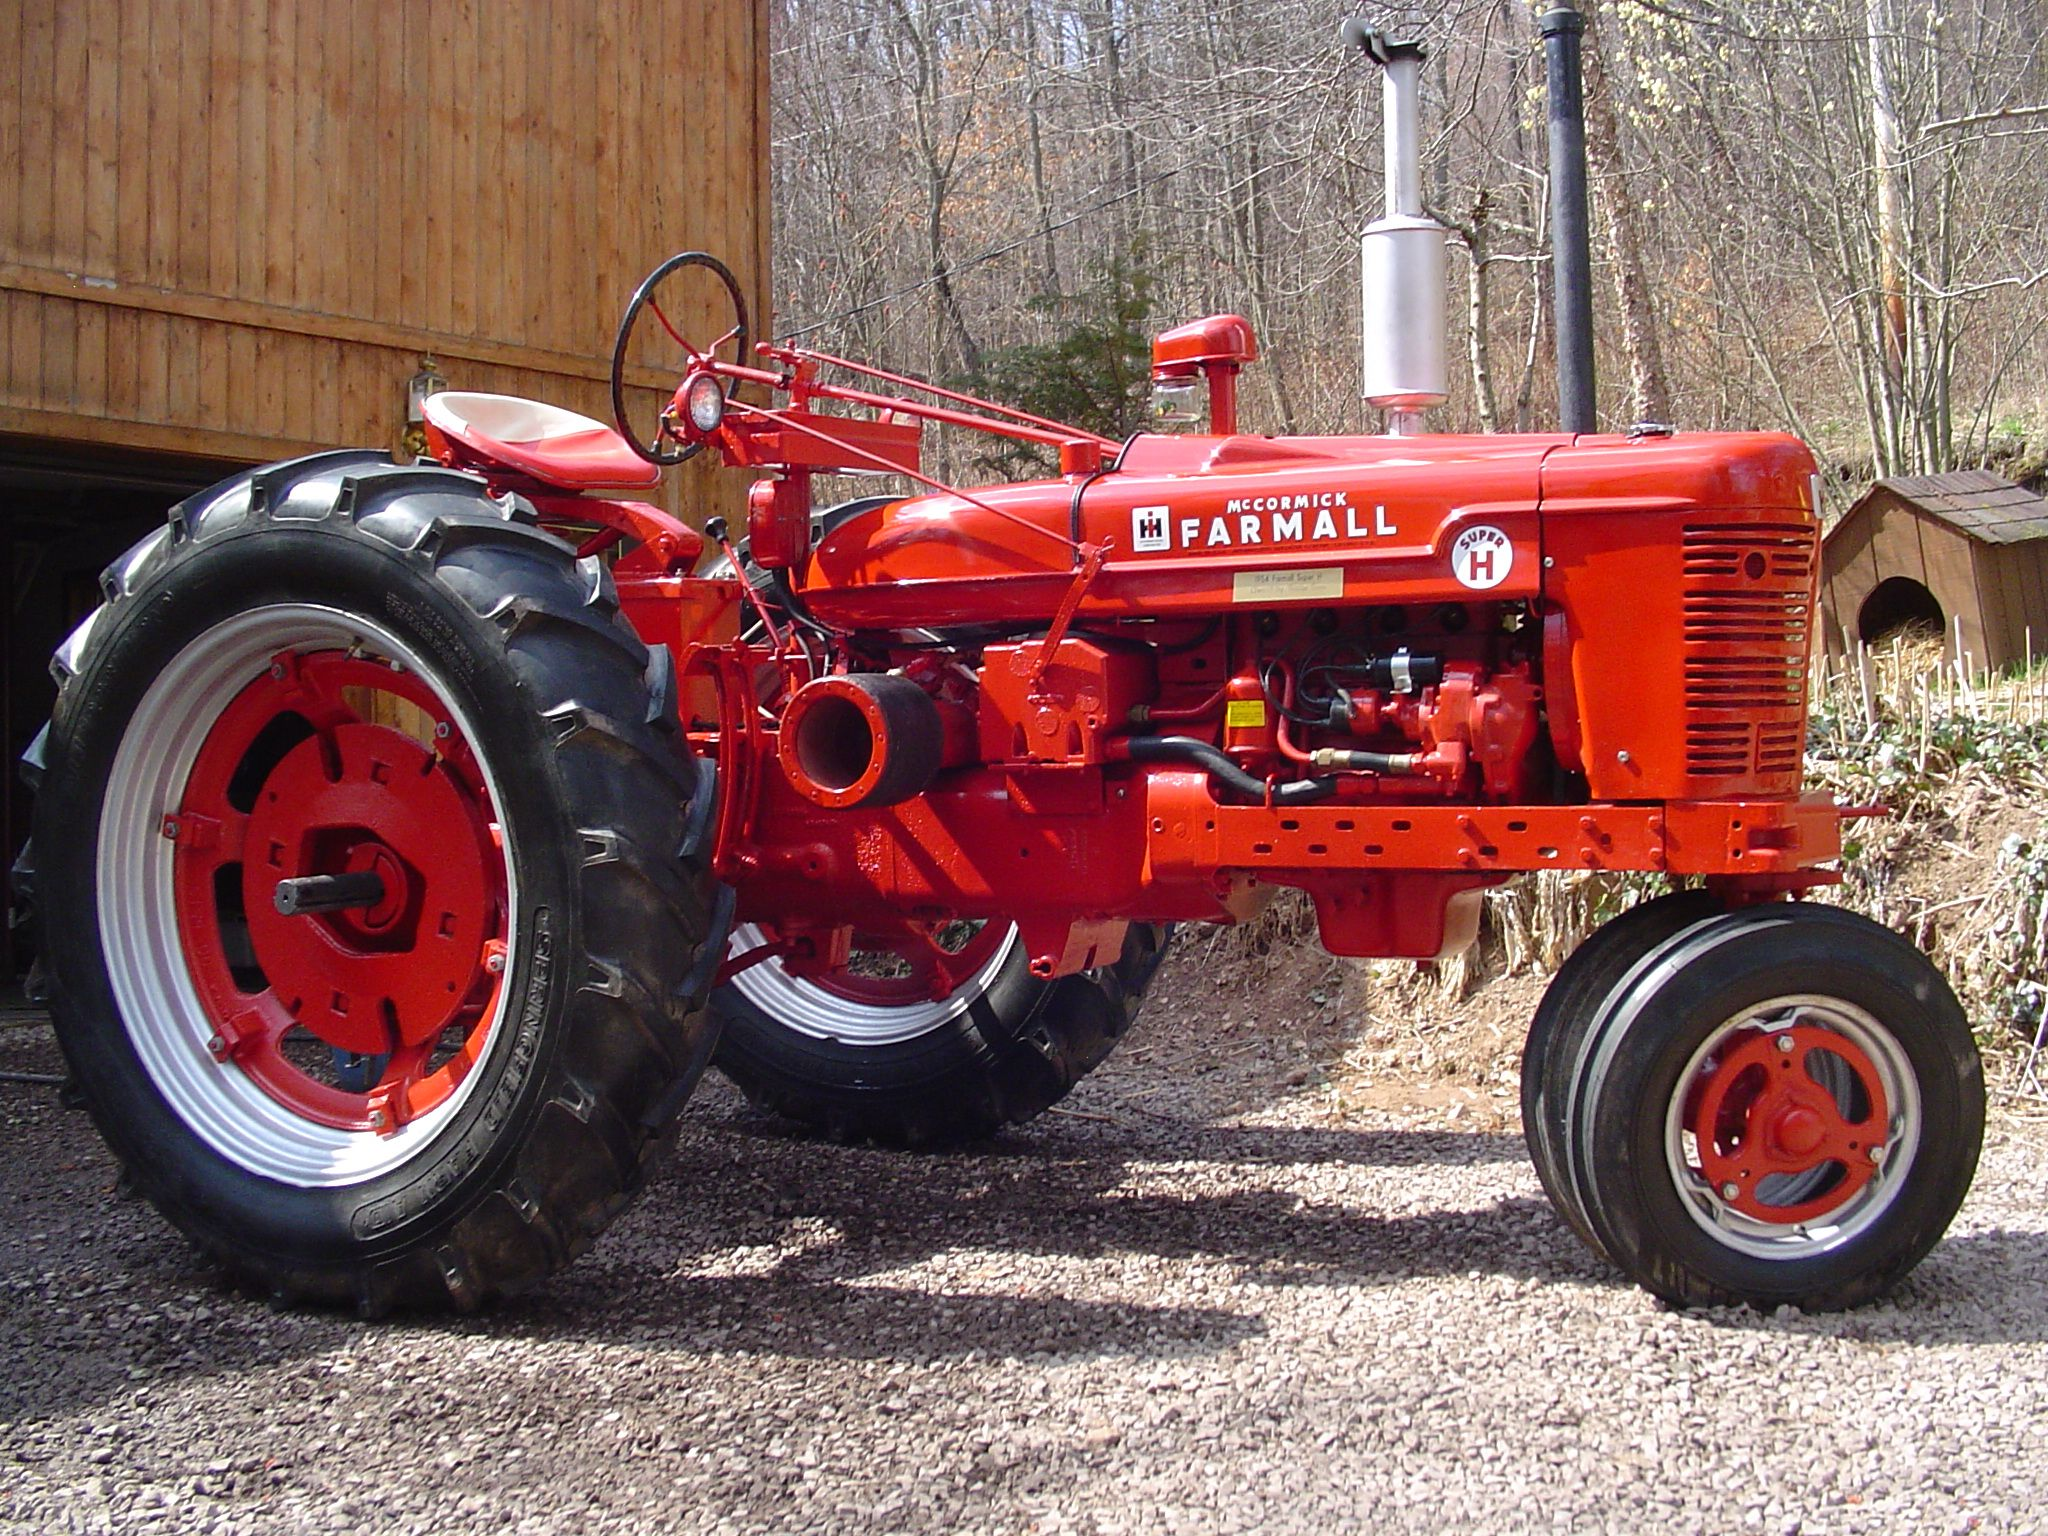 1954 International Harvester Farmall Super H Not a lot to say about this  tractor but holy crap I want one please